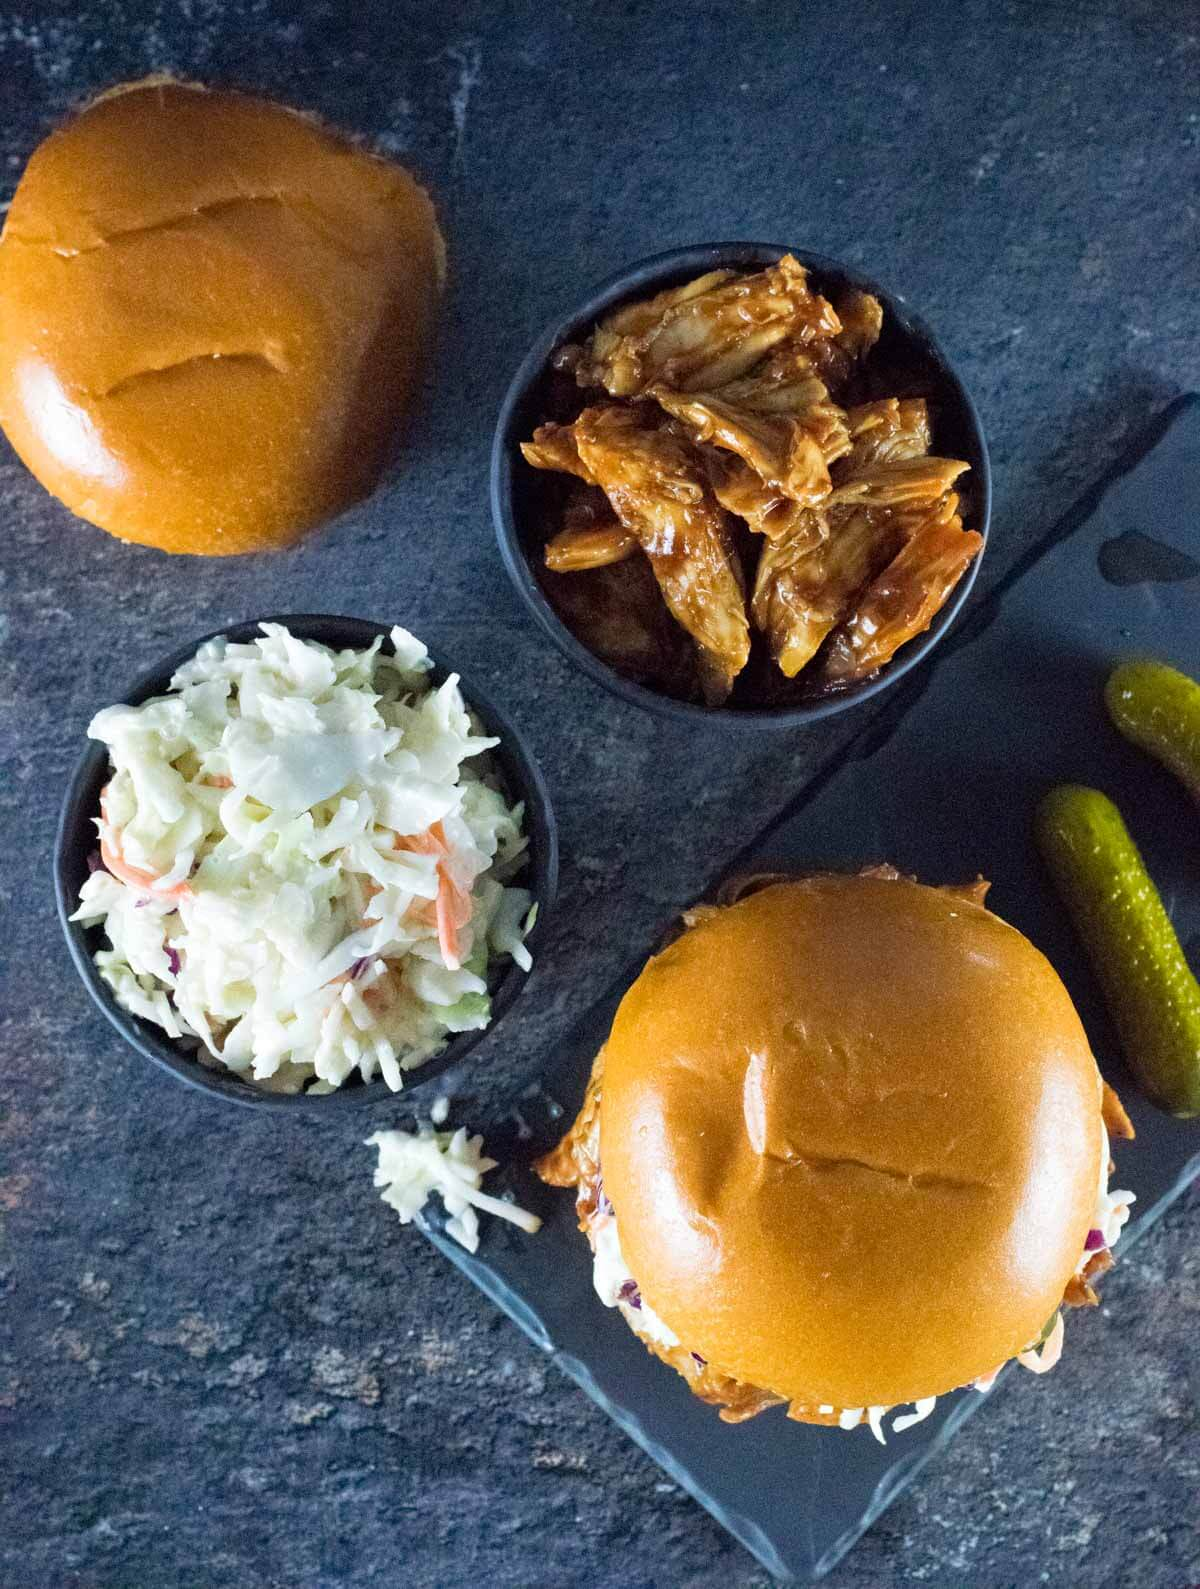 BBQ Pulled Chicken and slaw with pickles on the side